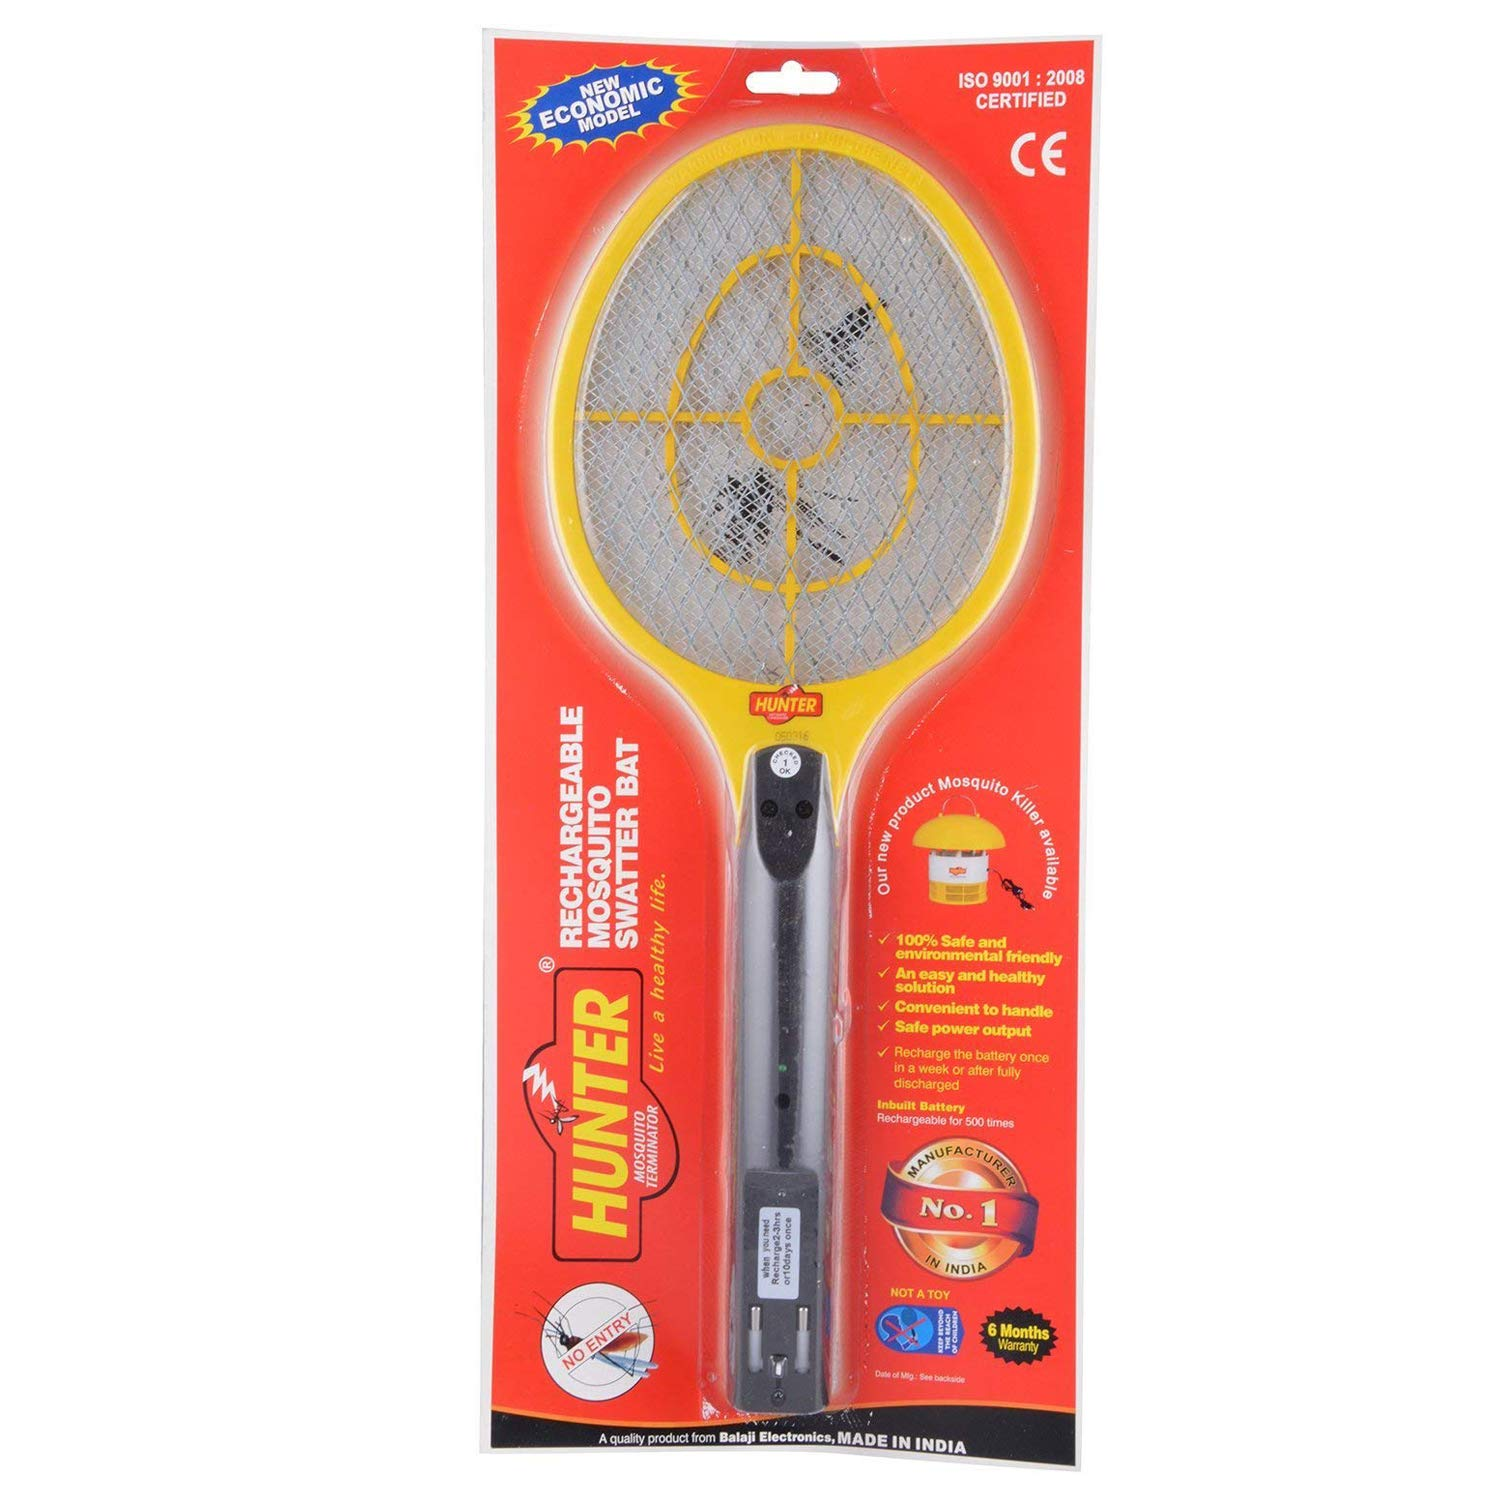 Hunter Brand Mosquito Killer Swatter Zapper Bat Racket Rechargeable 100% Environment Friendly Shock Proof Safe for Human, Pets - Mosquito Bat